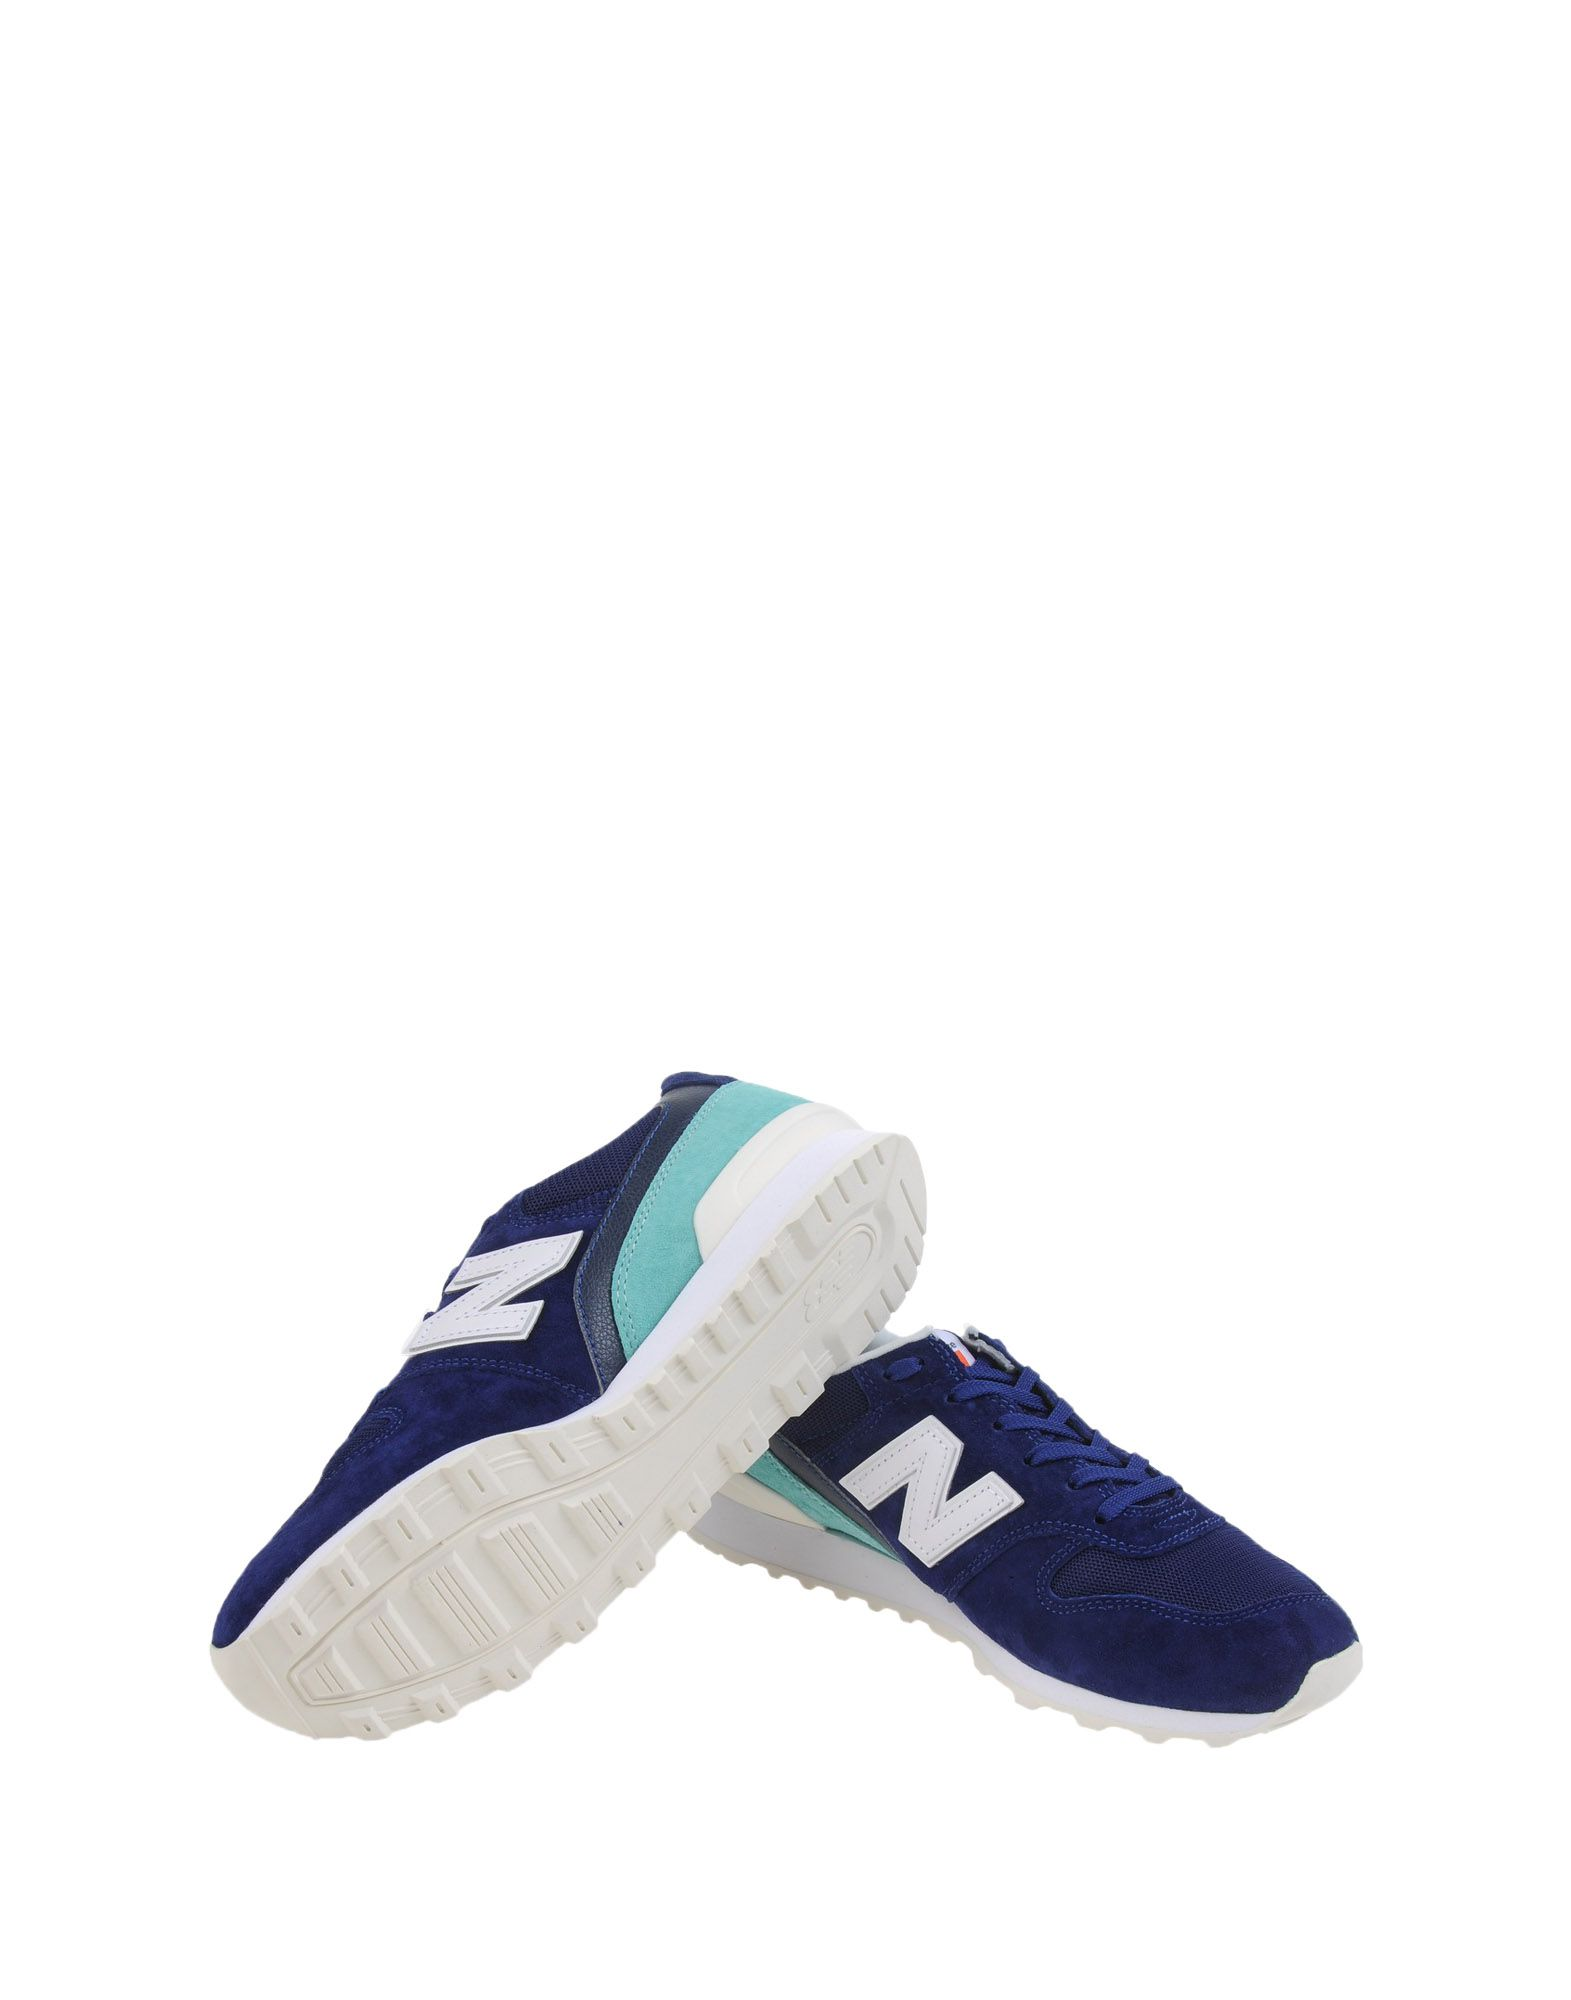 Sneakers New Balance 996 Womens Bright - Femme - Sneakers New Balance sur